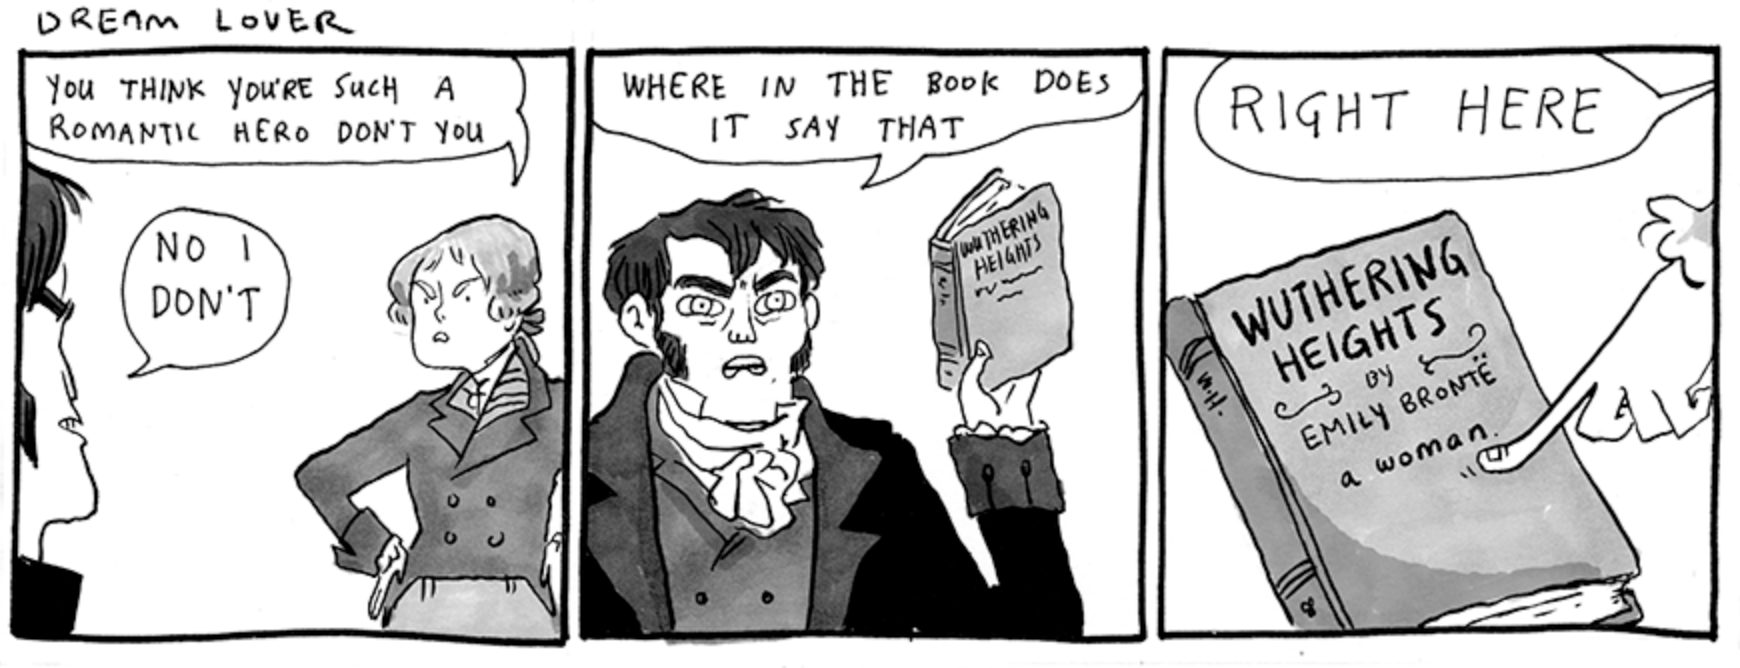 A three-panel comic strip titled 'Dream Lover', depicting characters from Wuthering Heights. Edgar: 'You think you're just a romantic hero, don't you.' Heathcliff: 'No I don't.' He holds up a copy of Wuthering Heights. 'Where in the book does it say that?' Edgar says 'Right here!' and points to the cover, which states 'by Emily Brotnë, a woman.'